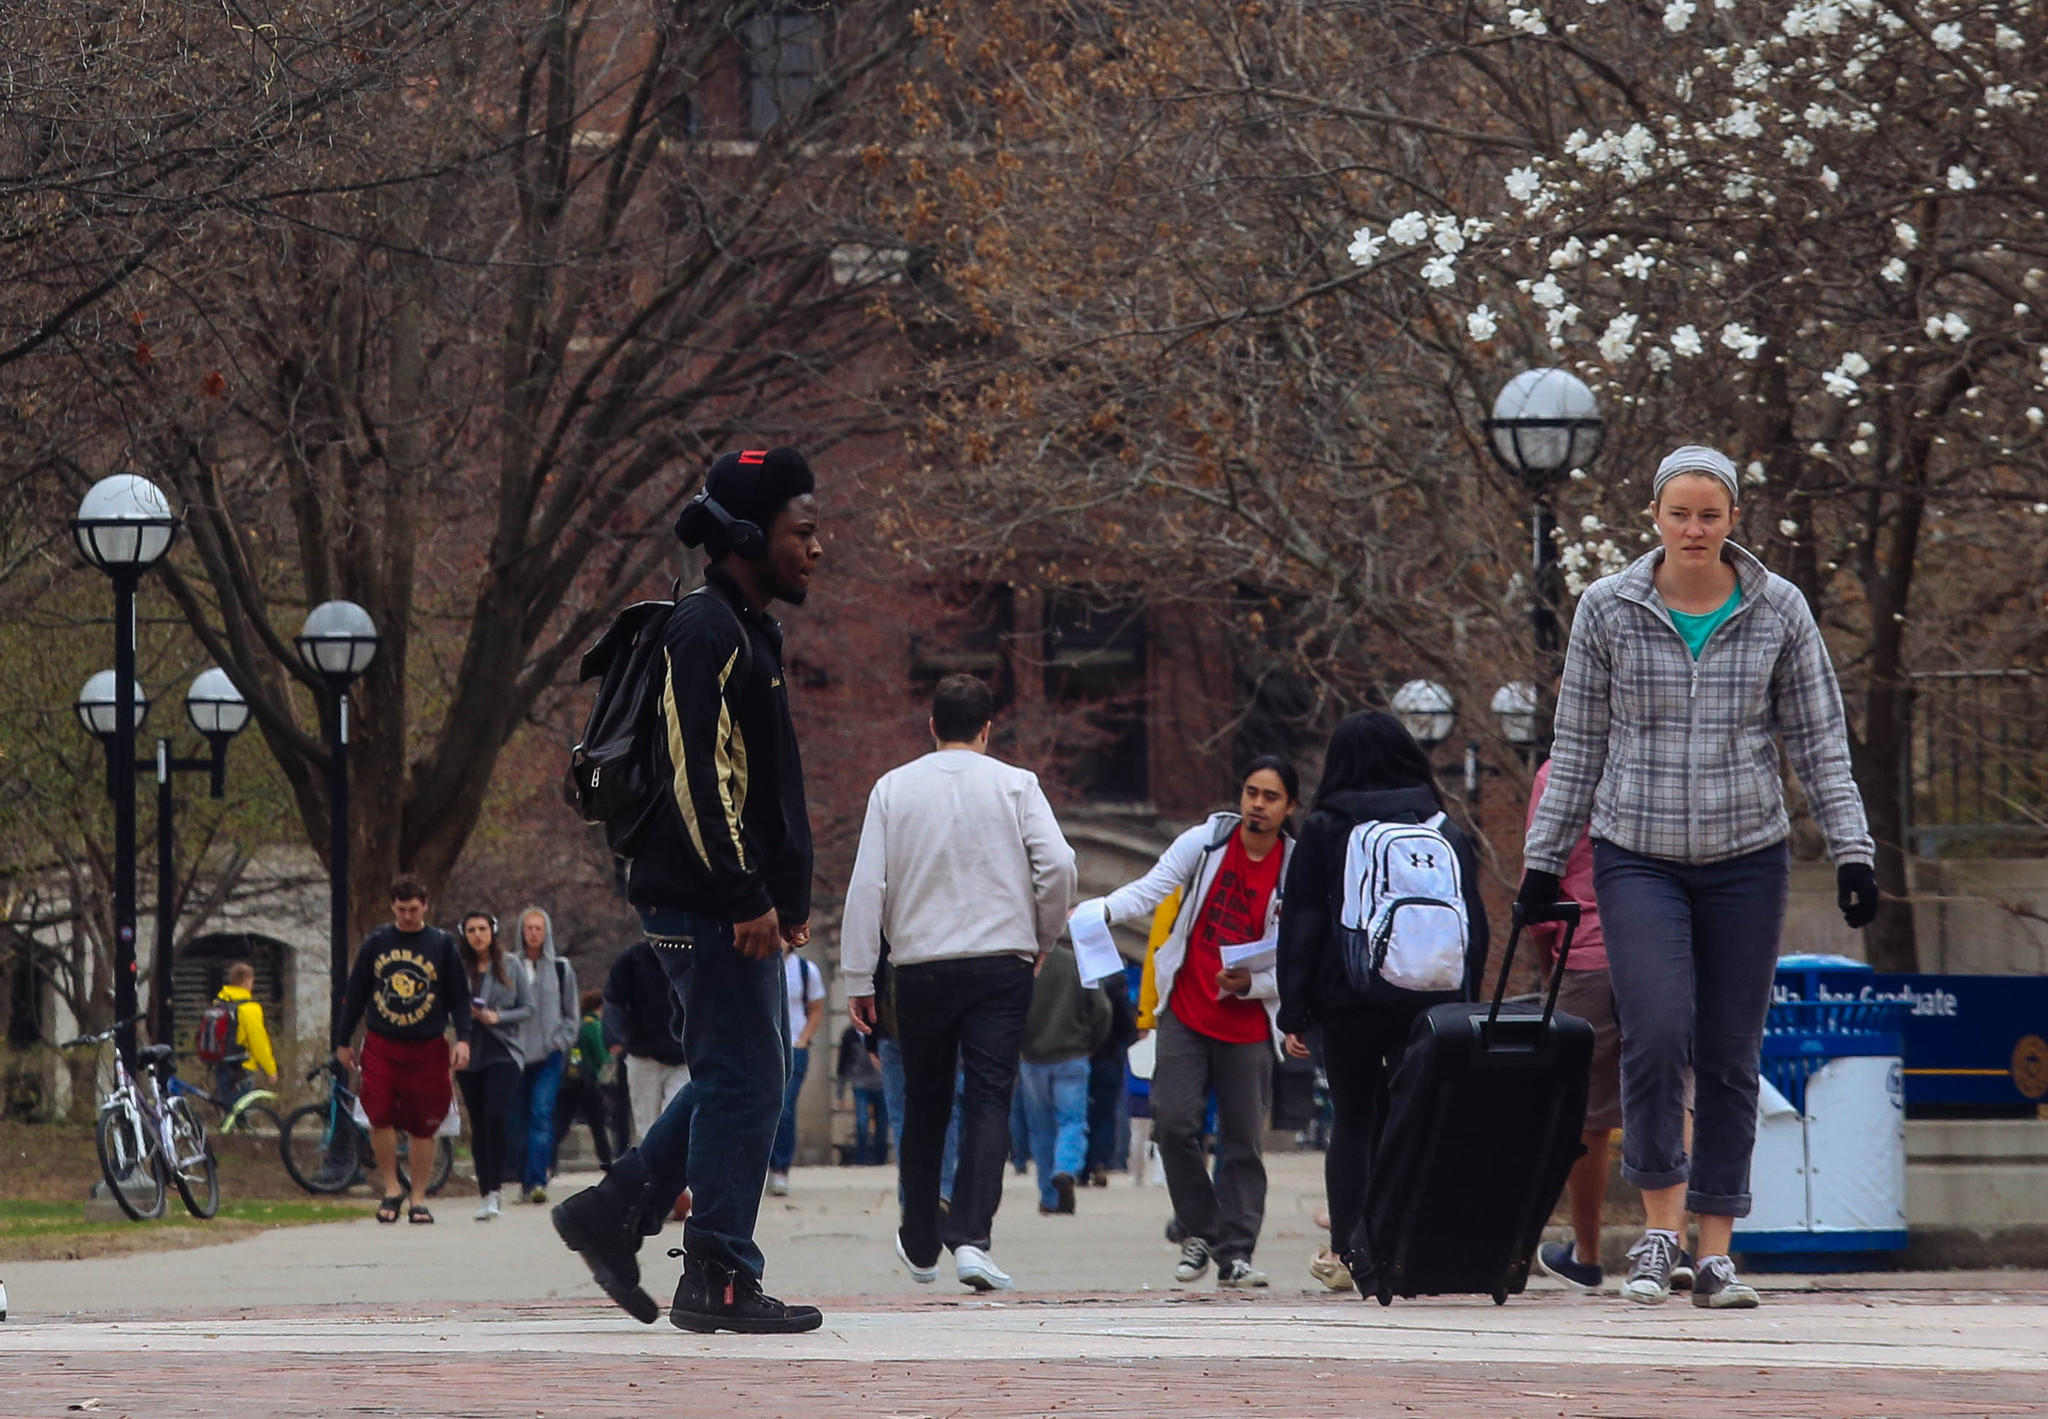 Students walk through the Ann Arbor campus of the University of Michigan in Ann Arbor, Mich. The United States Supreme Court on Tuesday upheld Michigan's ban on affirmative action enacted by voters in 2006.